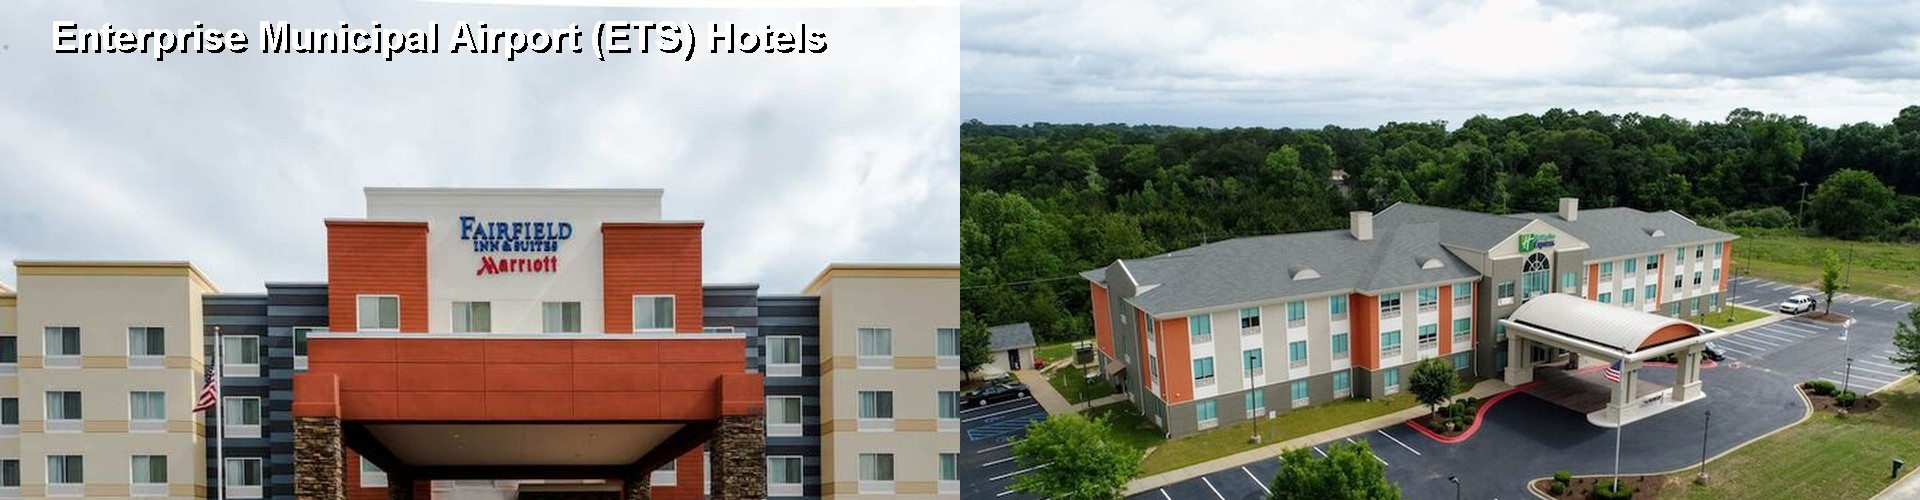 5 Best Hotels near Enterprise Municipal Airport (ETS)